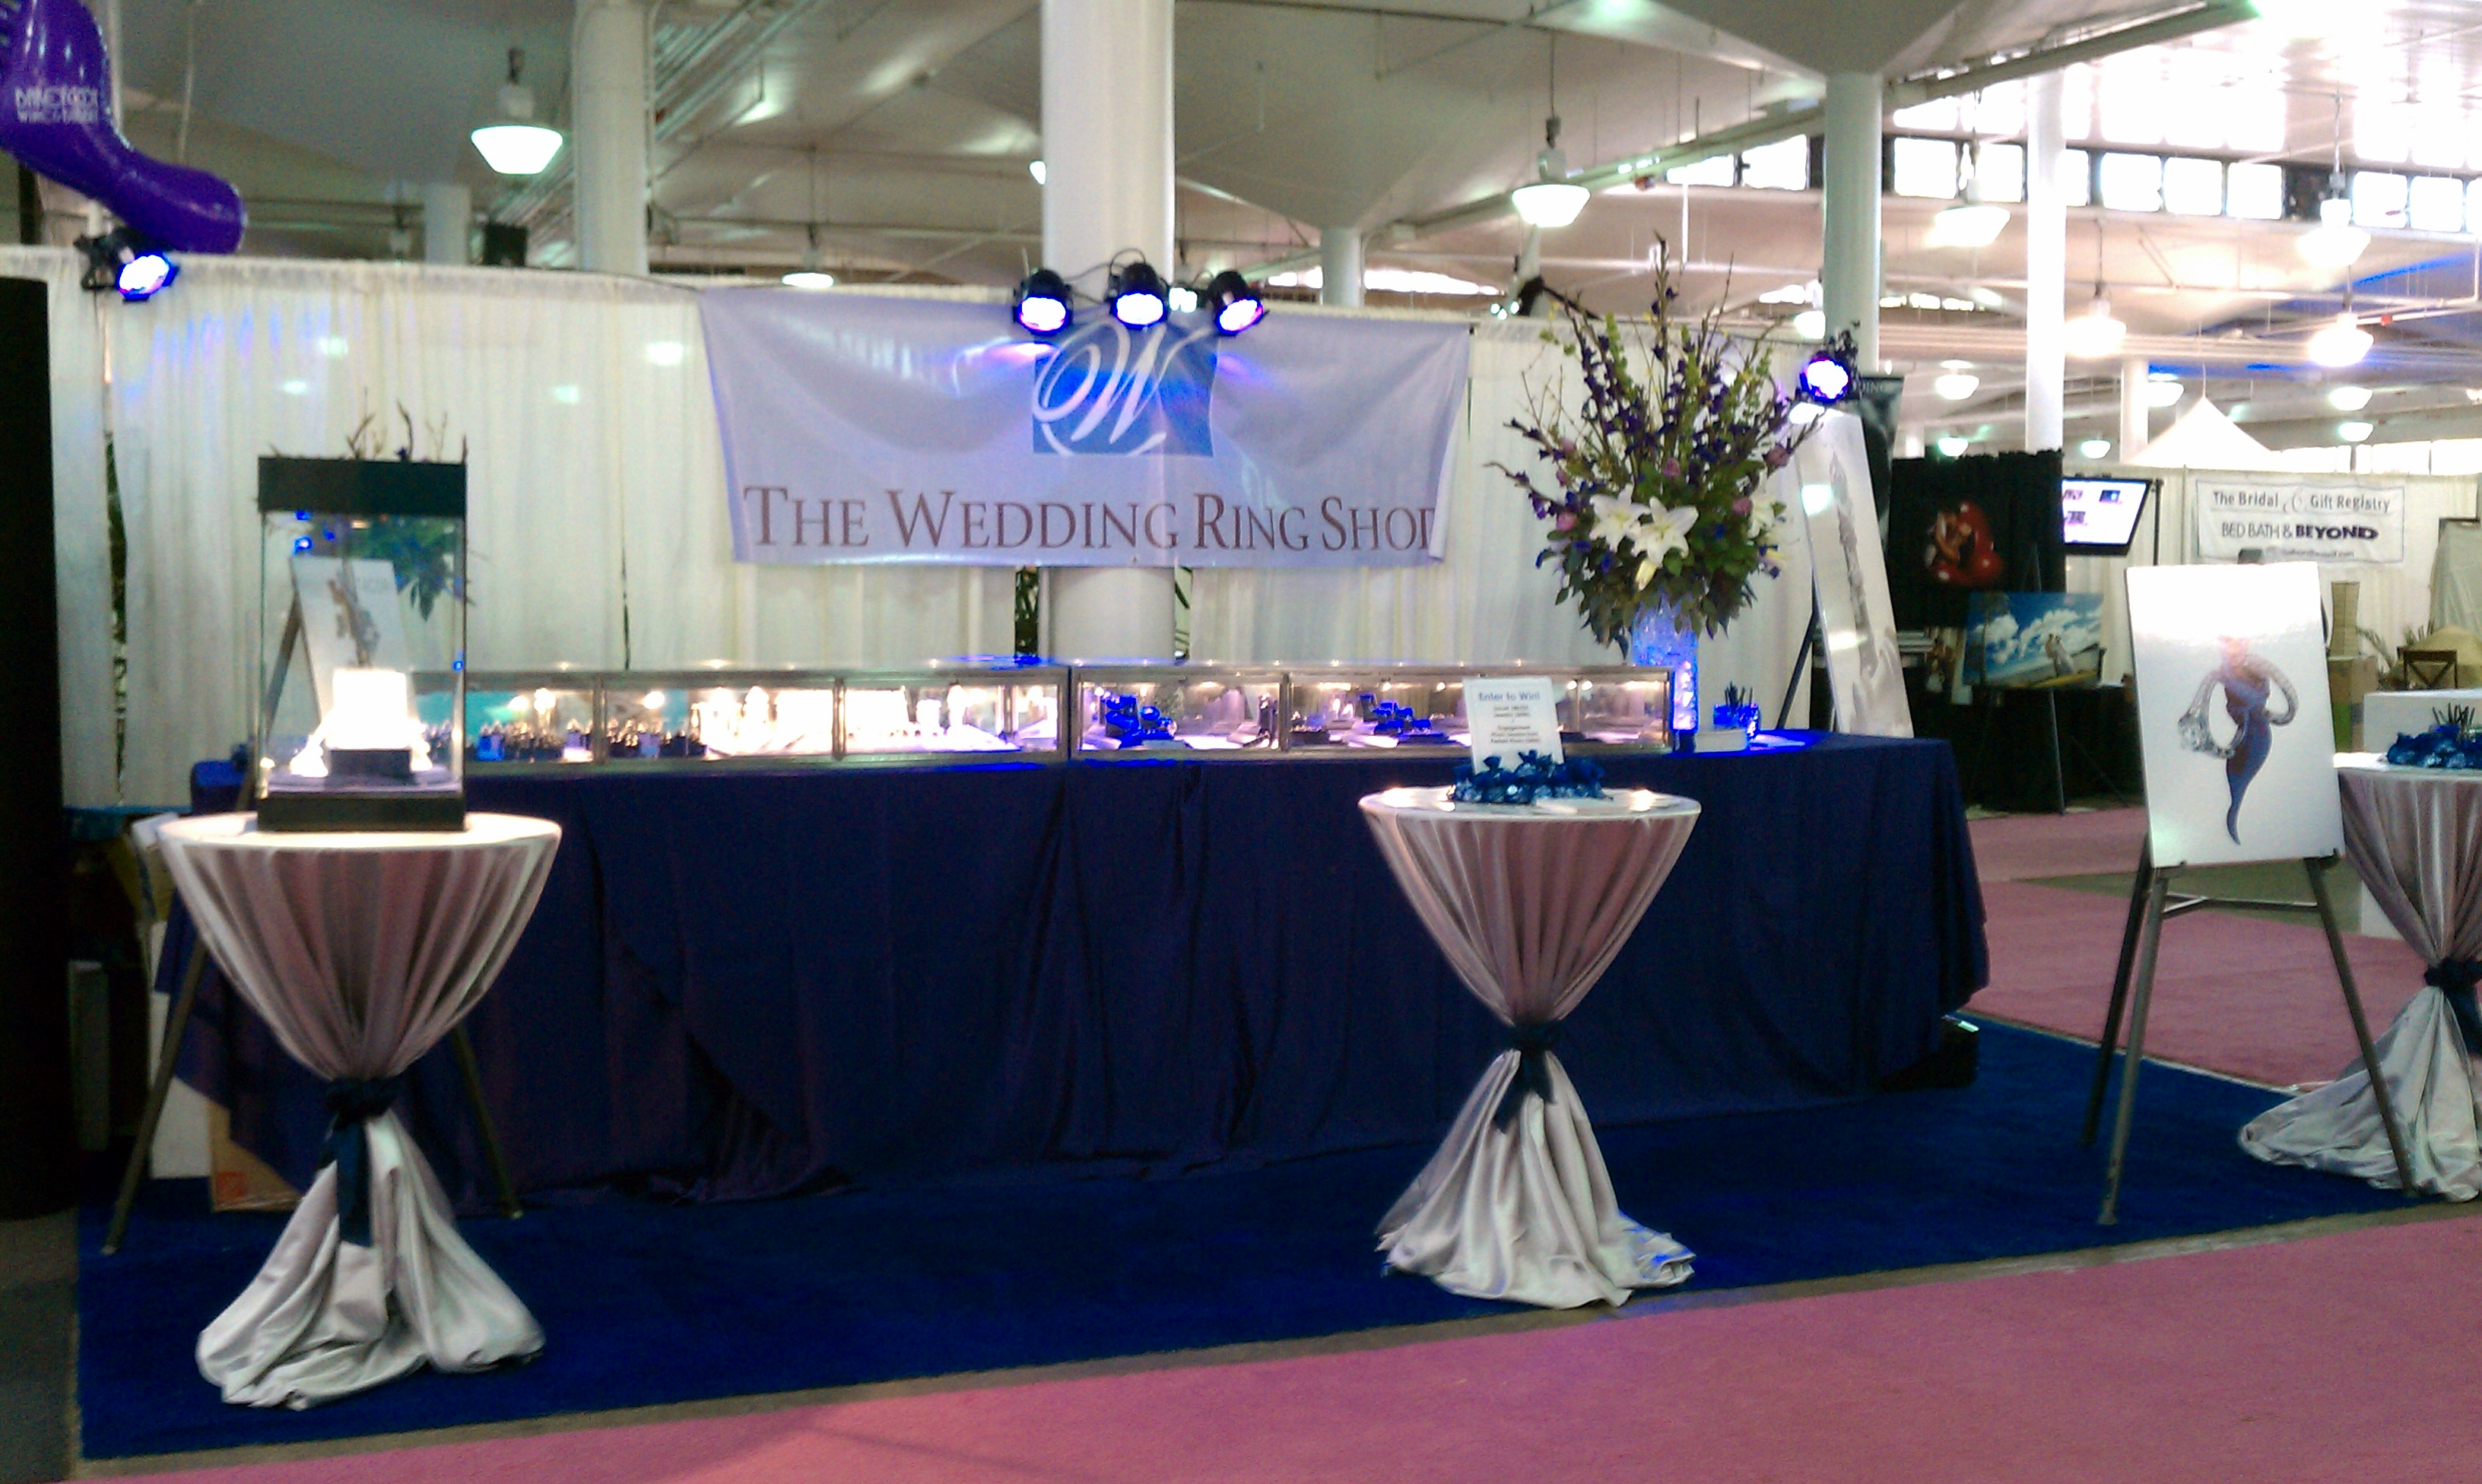 the wedding rings shop - The Wedding Ring Shop